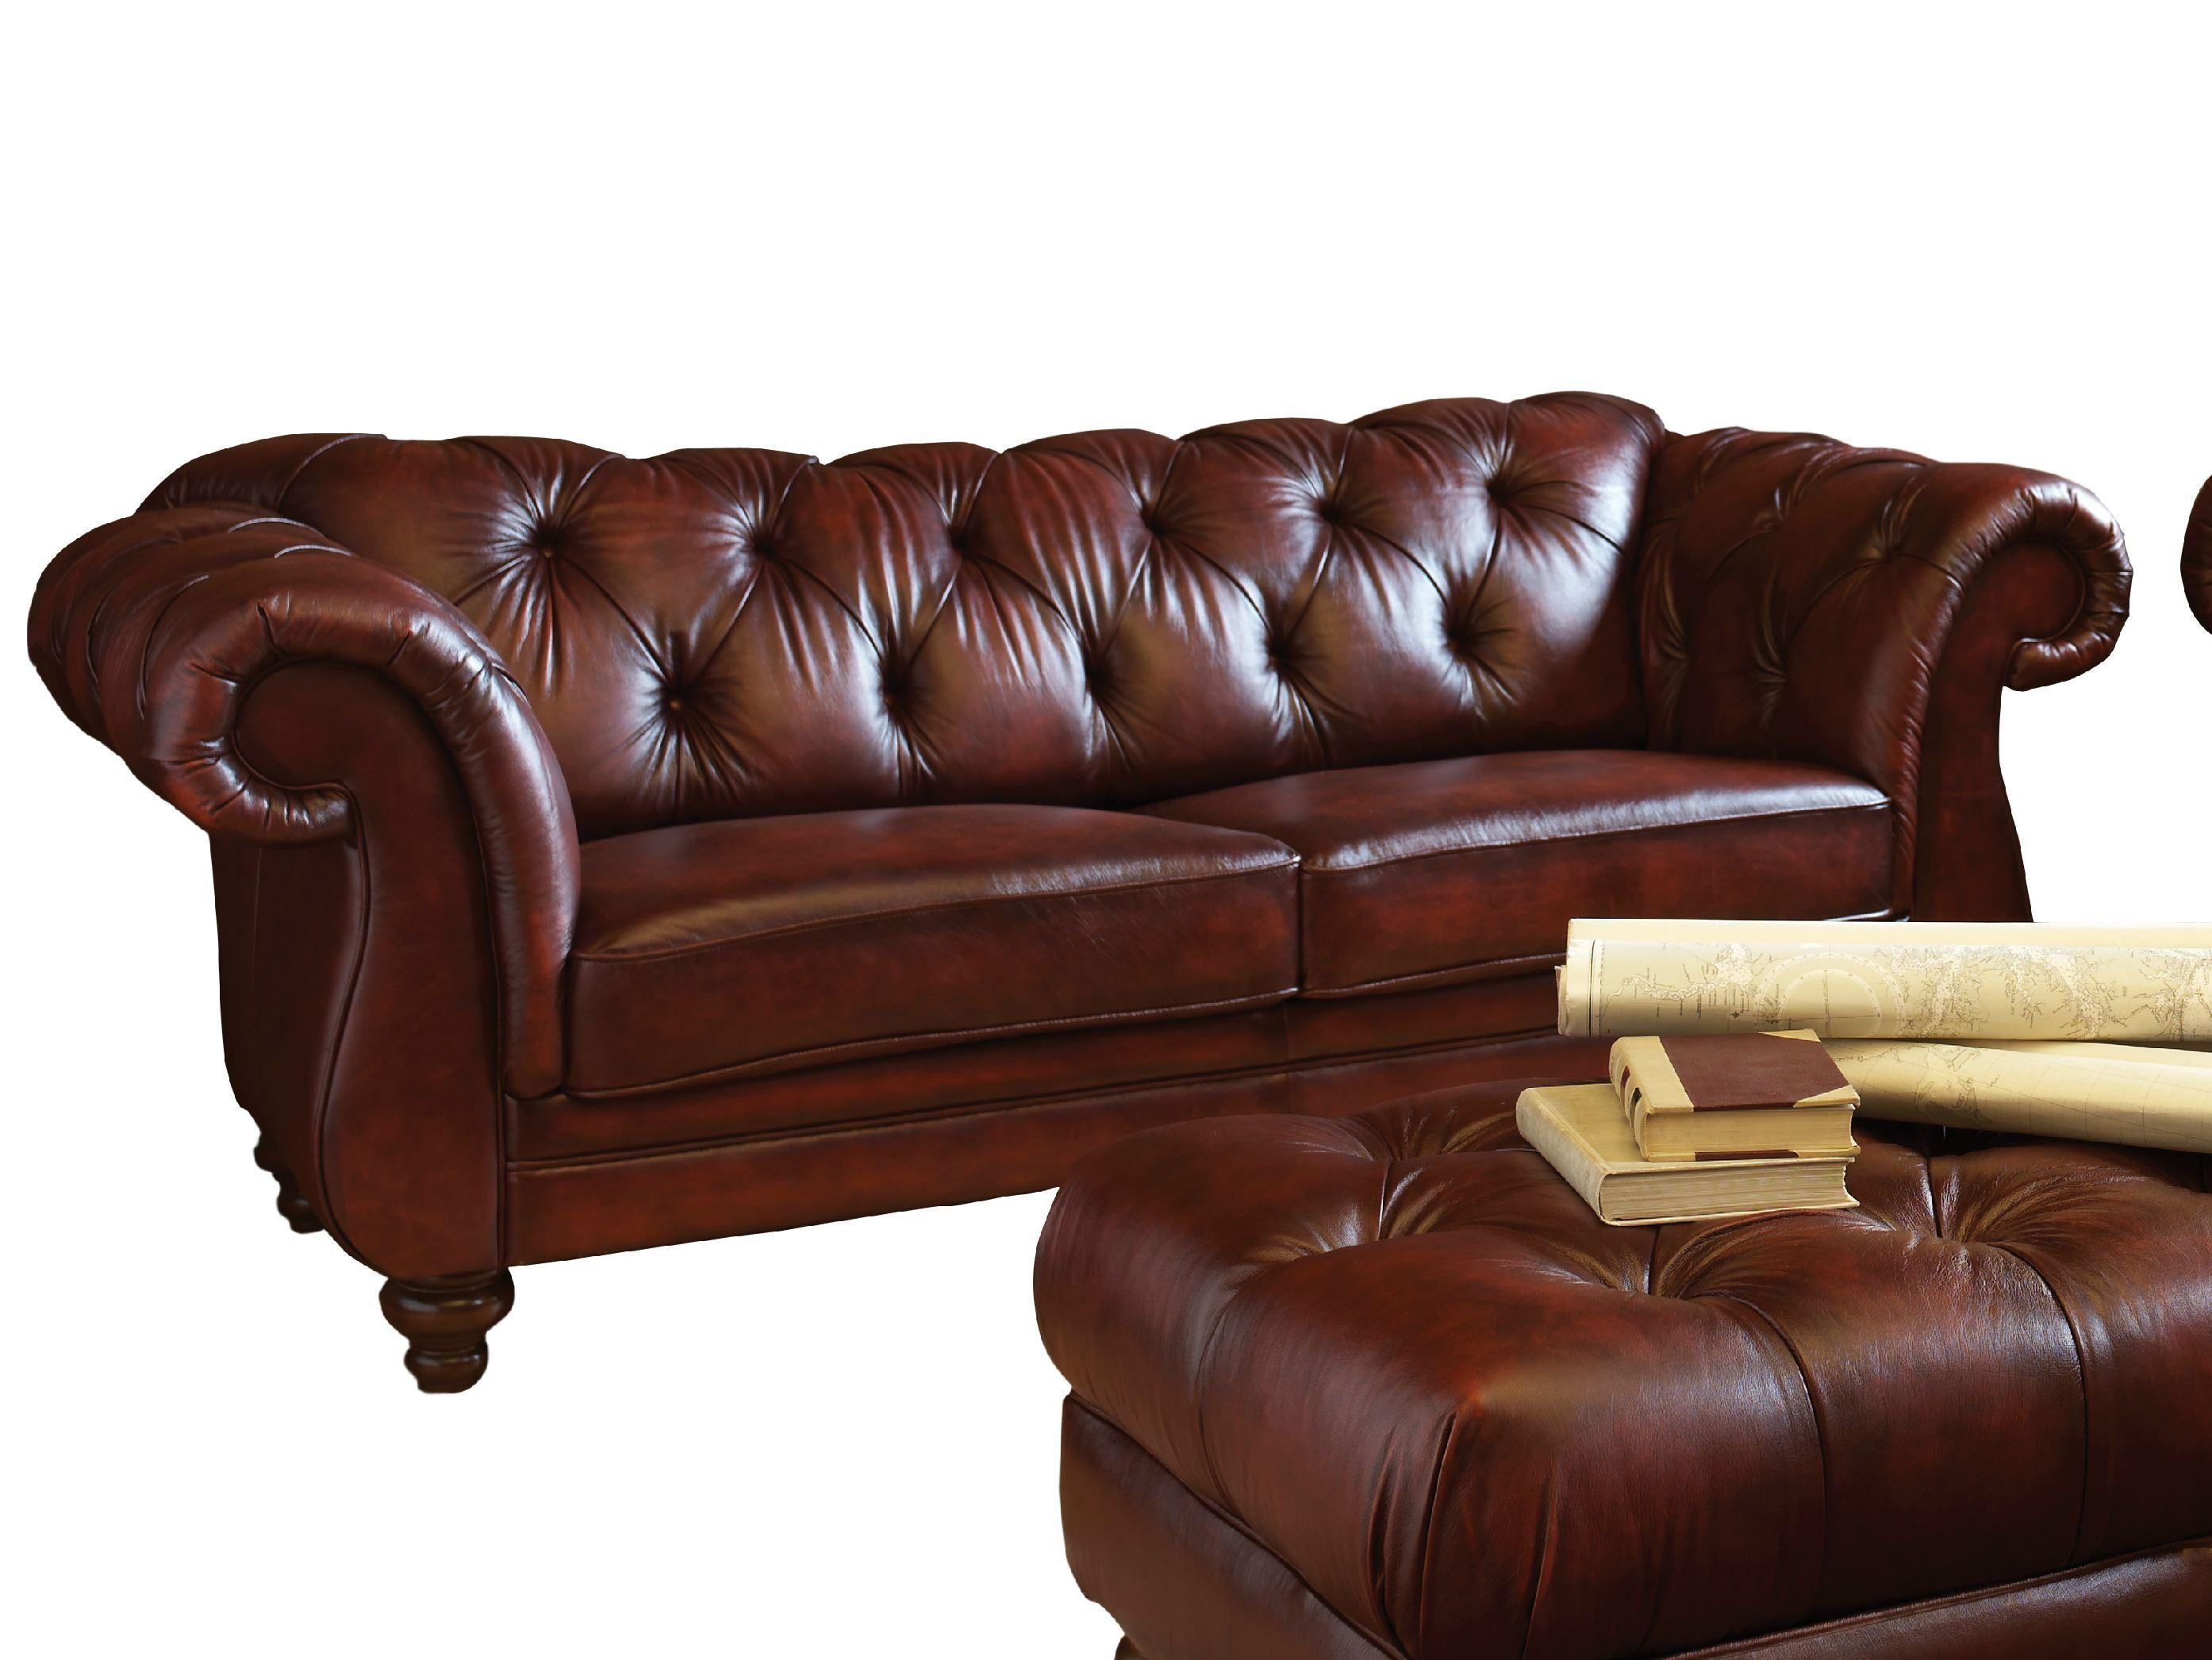 Dark Brown Color Modern Two Seater Leather Tufted Sofa With Intended For Brown Leather Tufted Sofas (View 7 of 20)